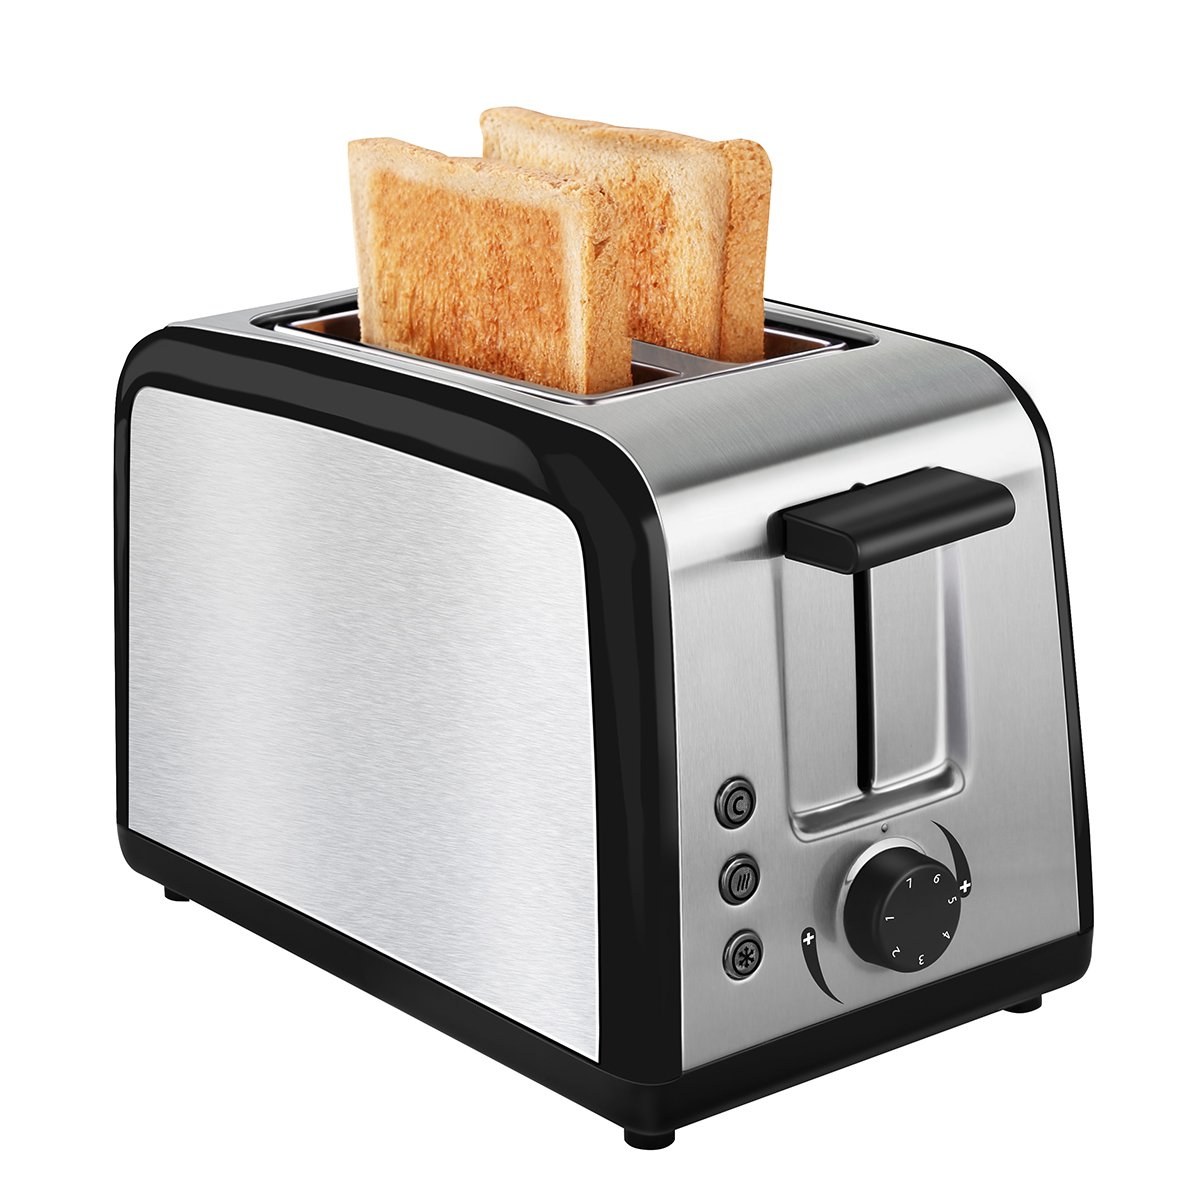 Toaster 2 Slice Warming Rack Brushed Stainless Steel for Breakfast Bread Toasters Best Rated Has Defrost Reheat Cancel Button Removable Crumb Tray By KEEMO by Keemo (Image #1)